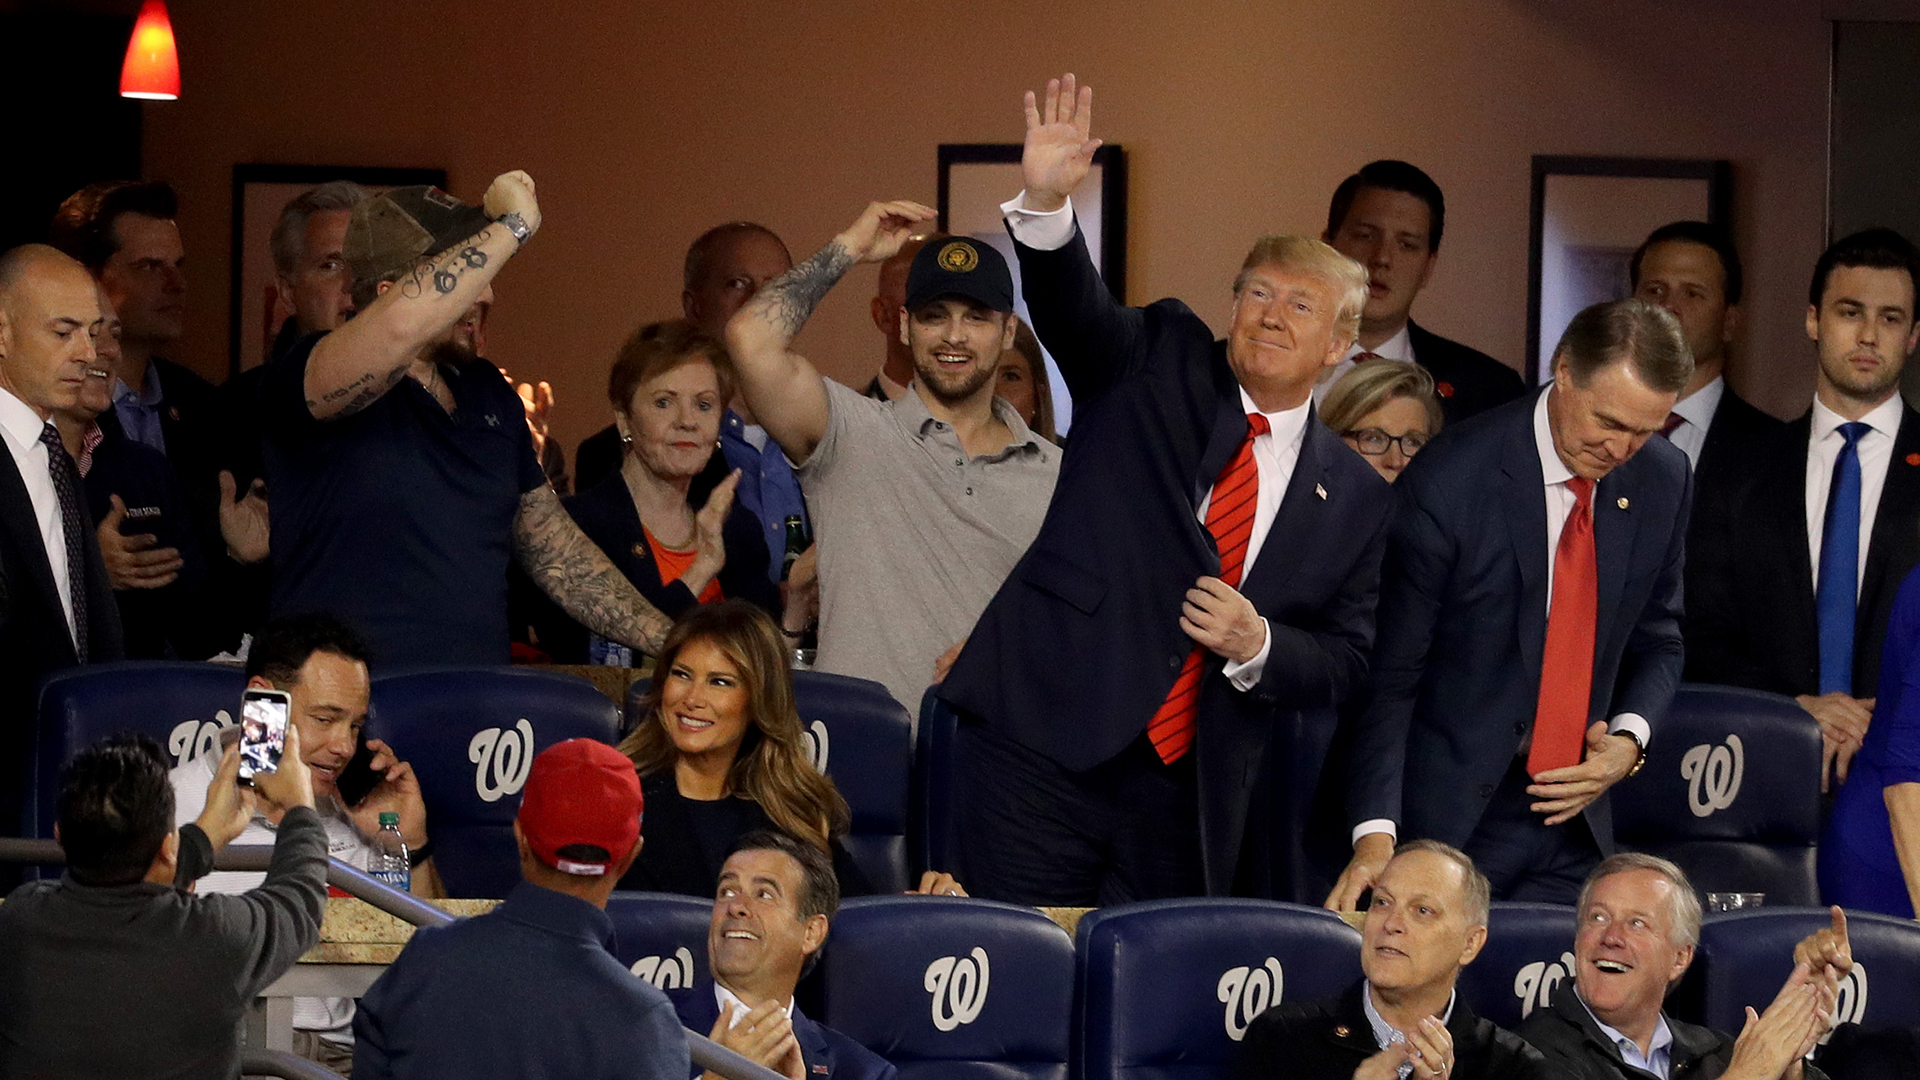 President Donald Trump attends Game Five of the 2019 World Series between the Houston Astros and the Washington Nationals at Nationals Park on October 27, 2019 in Washington, DC. (Credit: Will Newton/Getty Images)